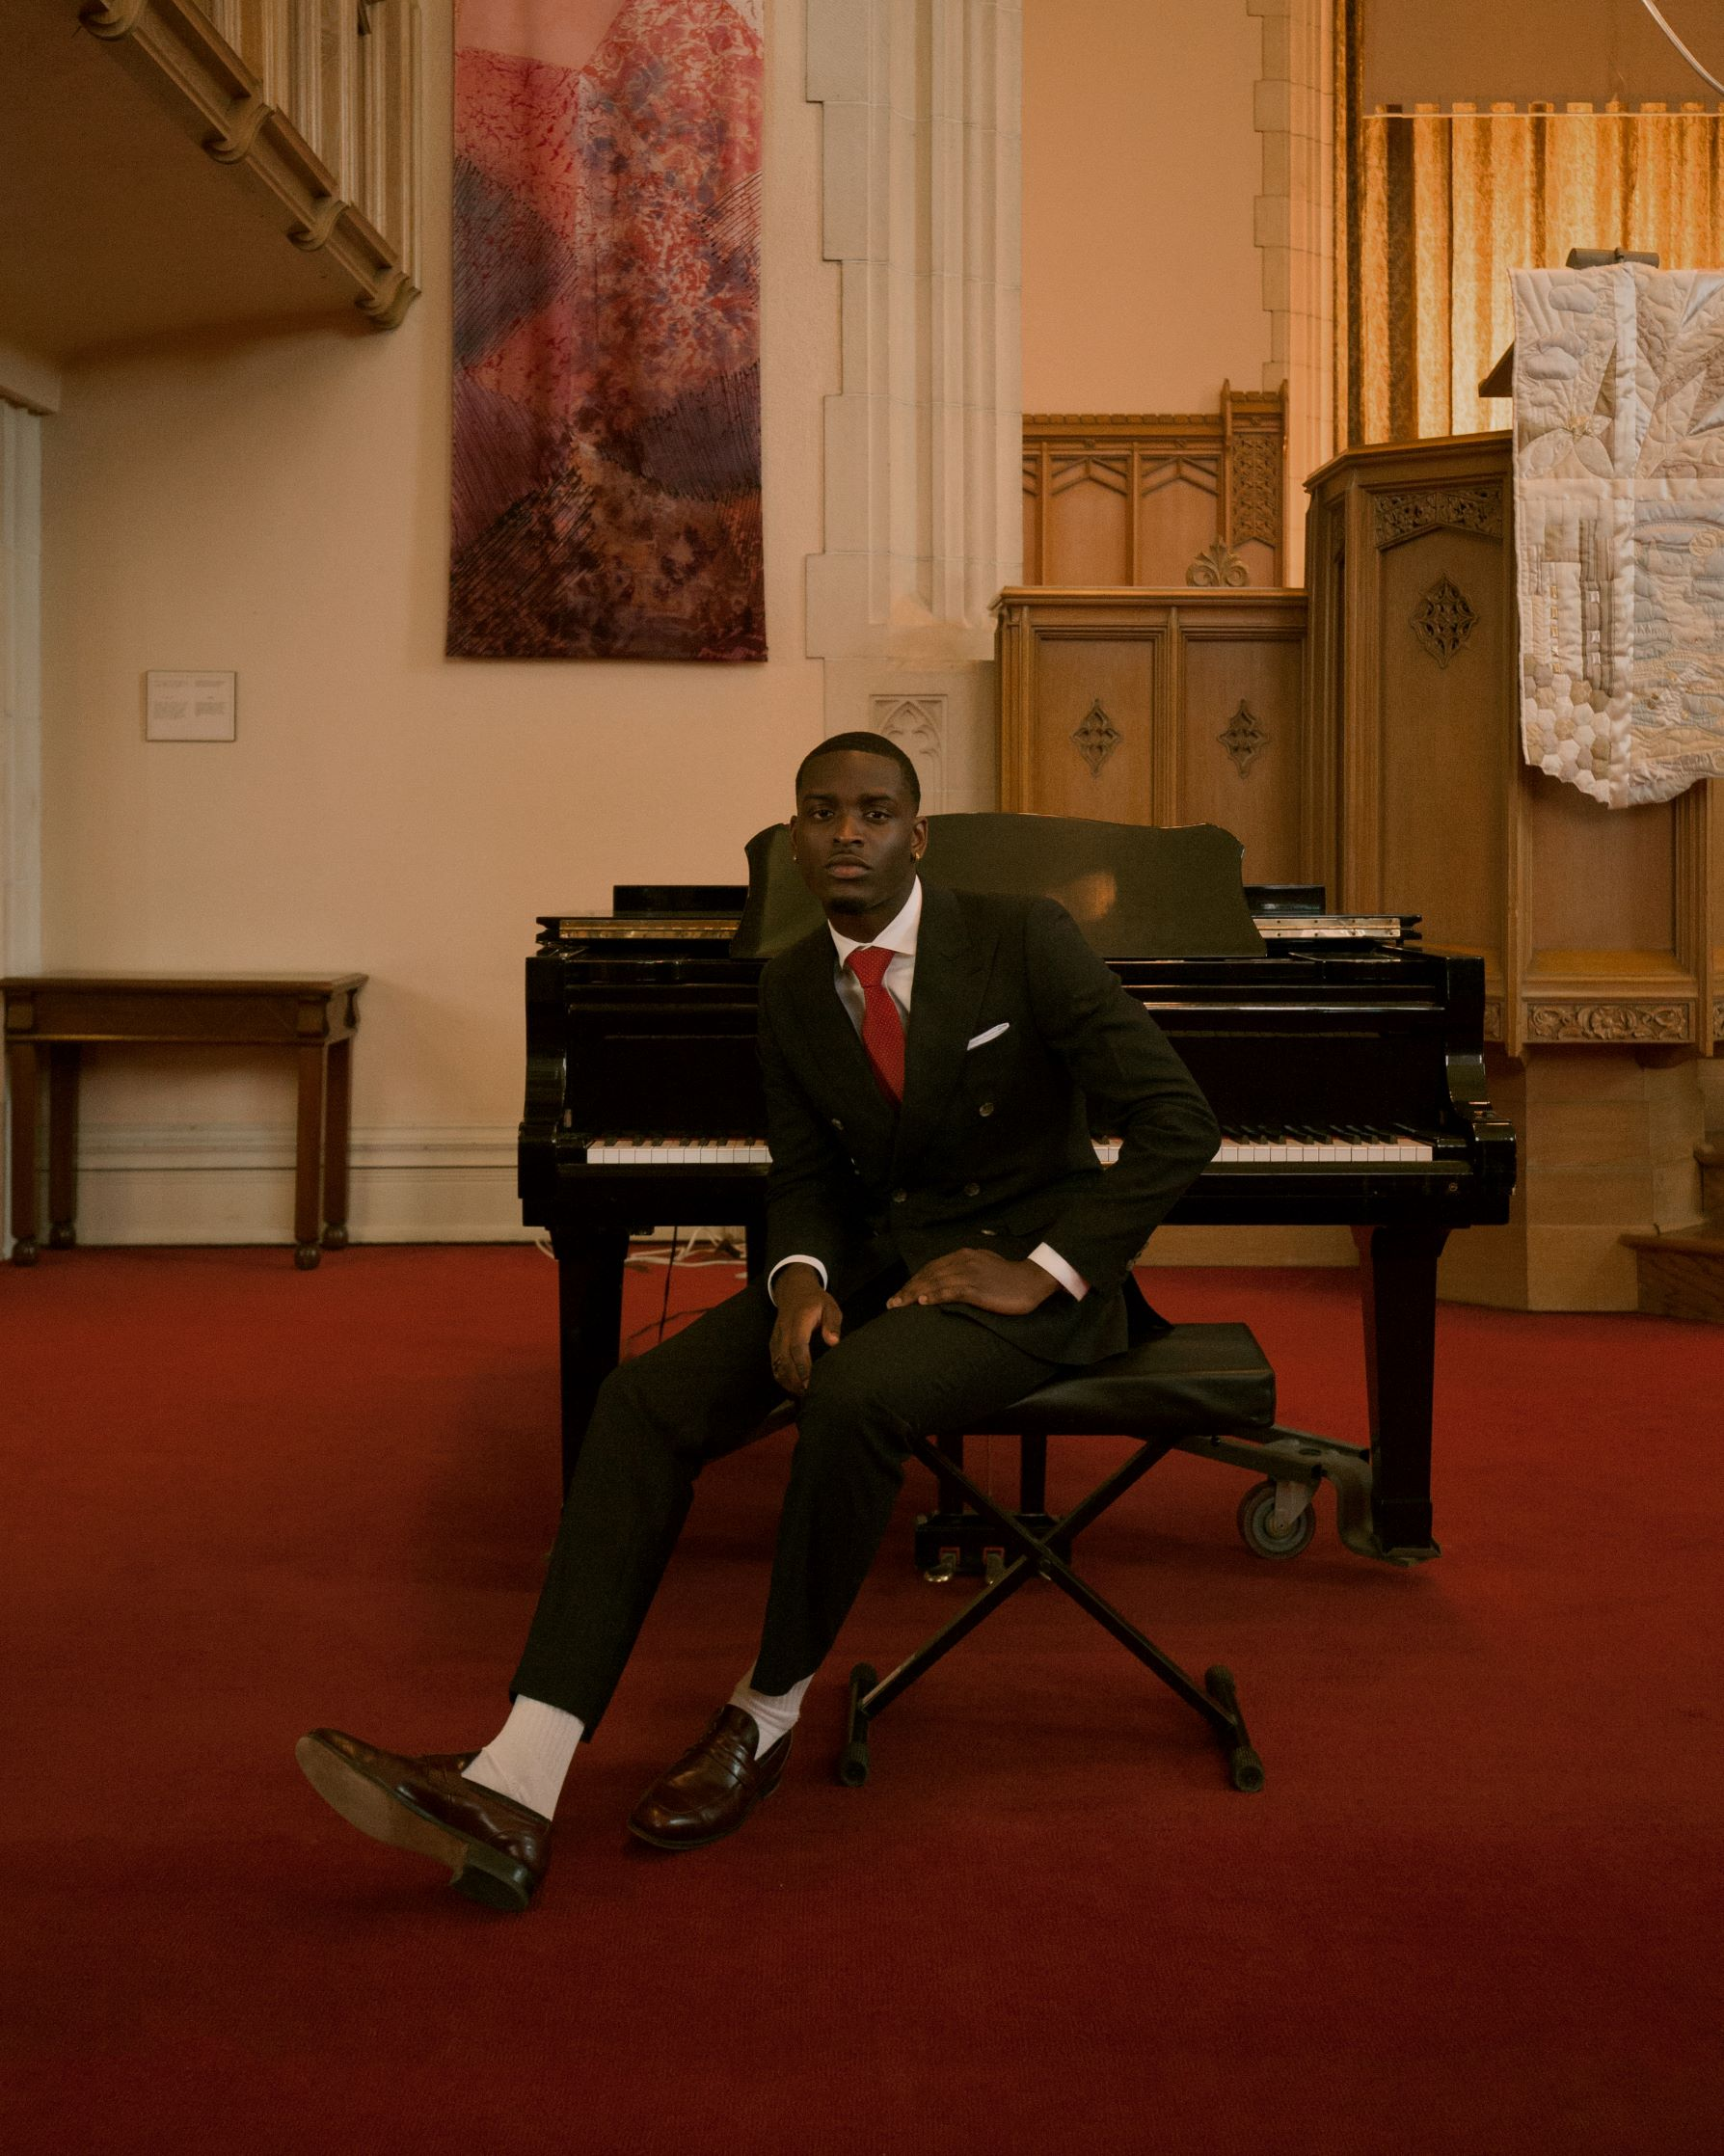 Josef Adamu sitting in front of a piano in a church